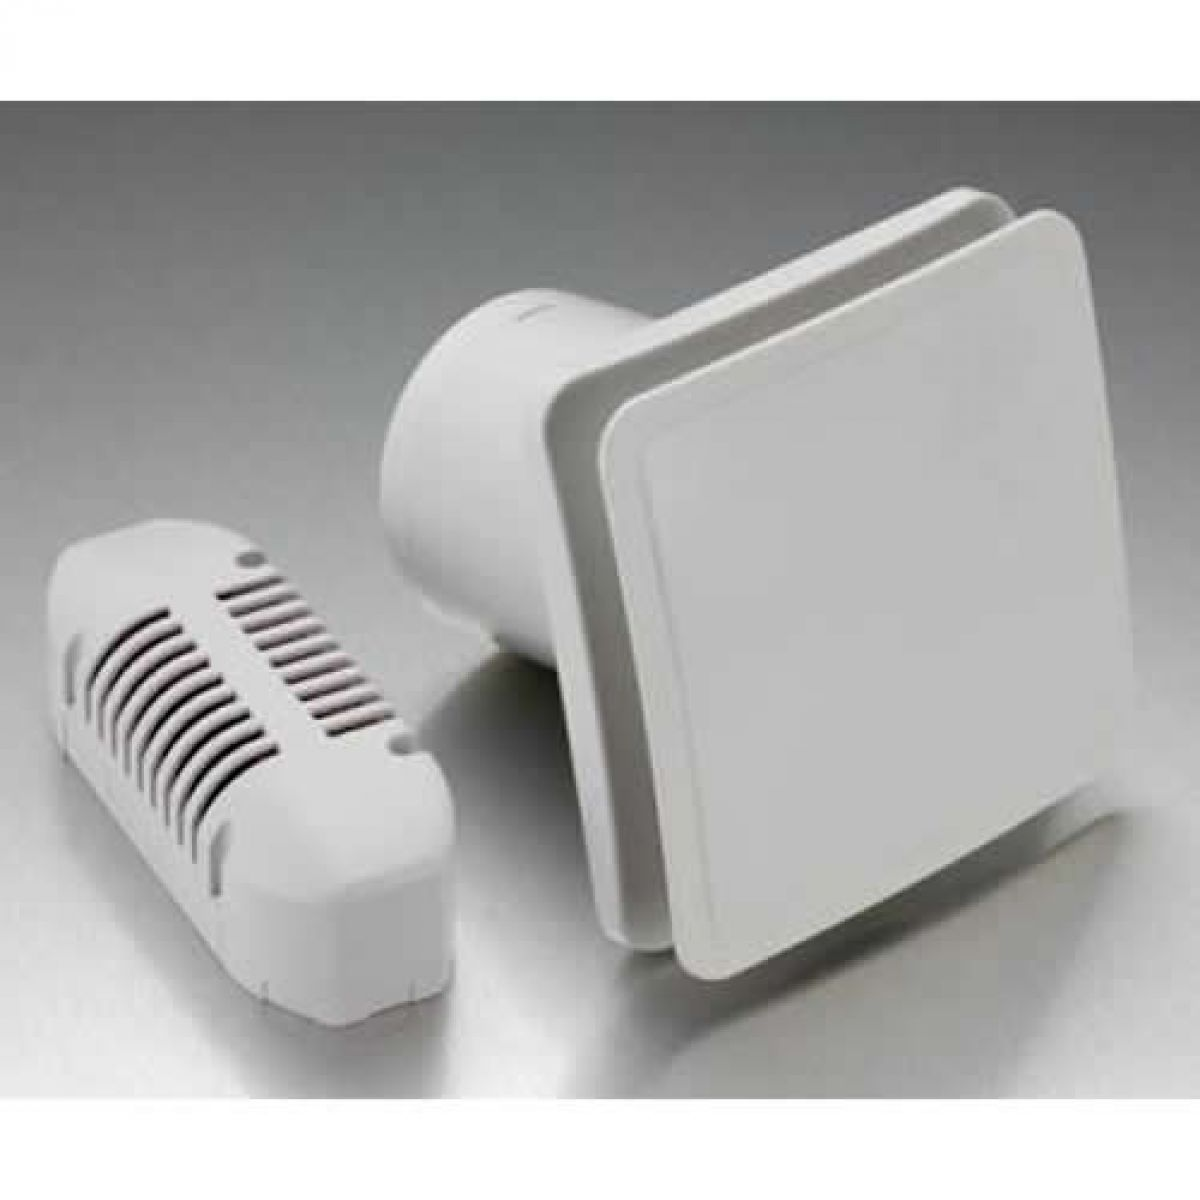 Extractor Fans Product : Zehnder adaptive extractor fan with smart timer uk bathrooms